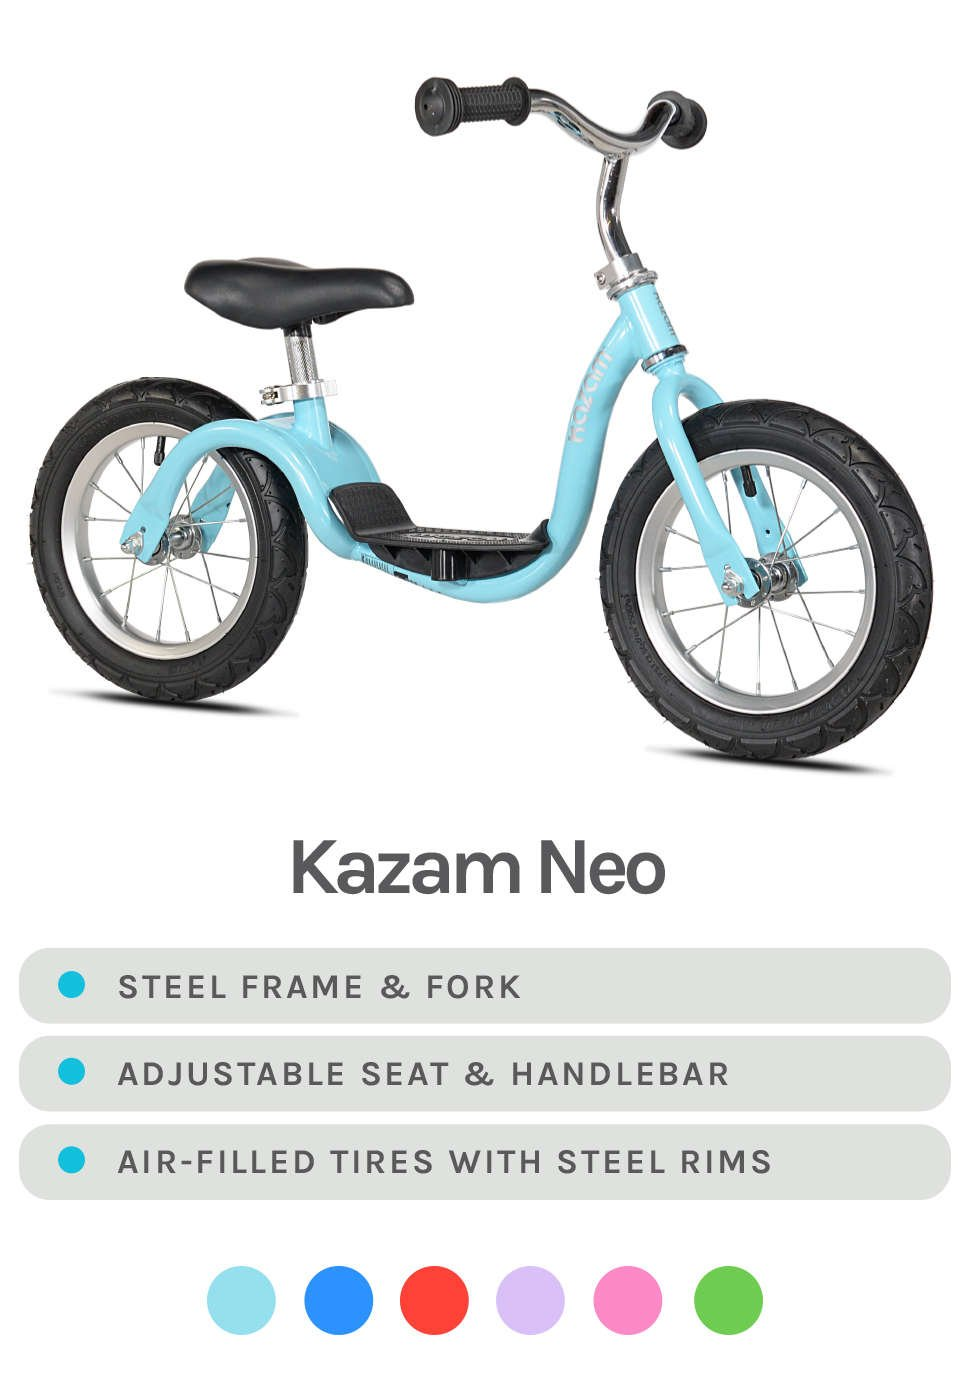 Light Blue Kazam Neo Featured - Specs - Steel Frame & Fork, Adjustable Seat & Handlebar, and Air-Filled Tires w/ Steel Rims - Available Colors - Light Blue, Blue, Red, Lilac, Pink, and Lime Green